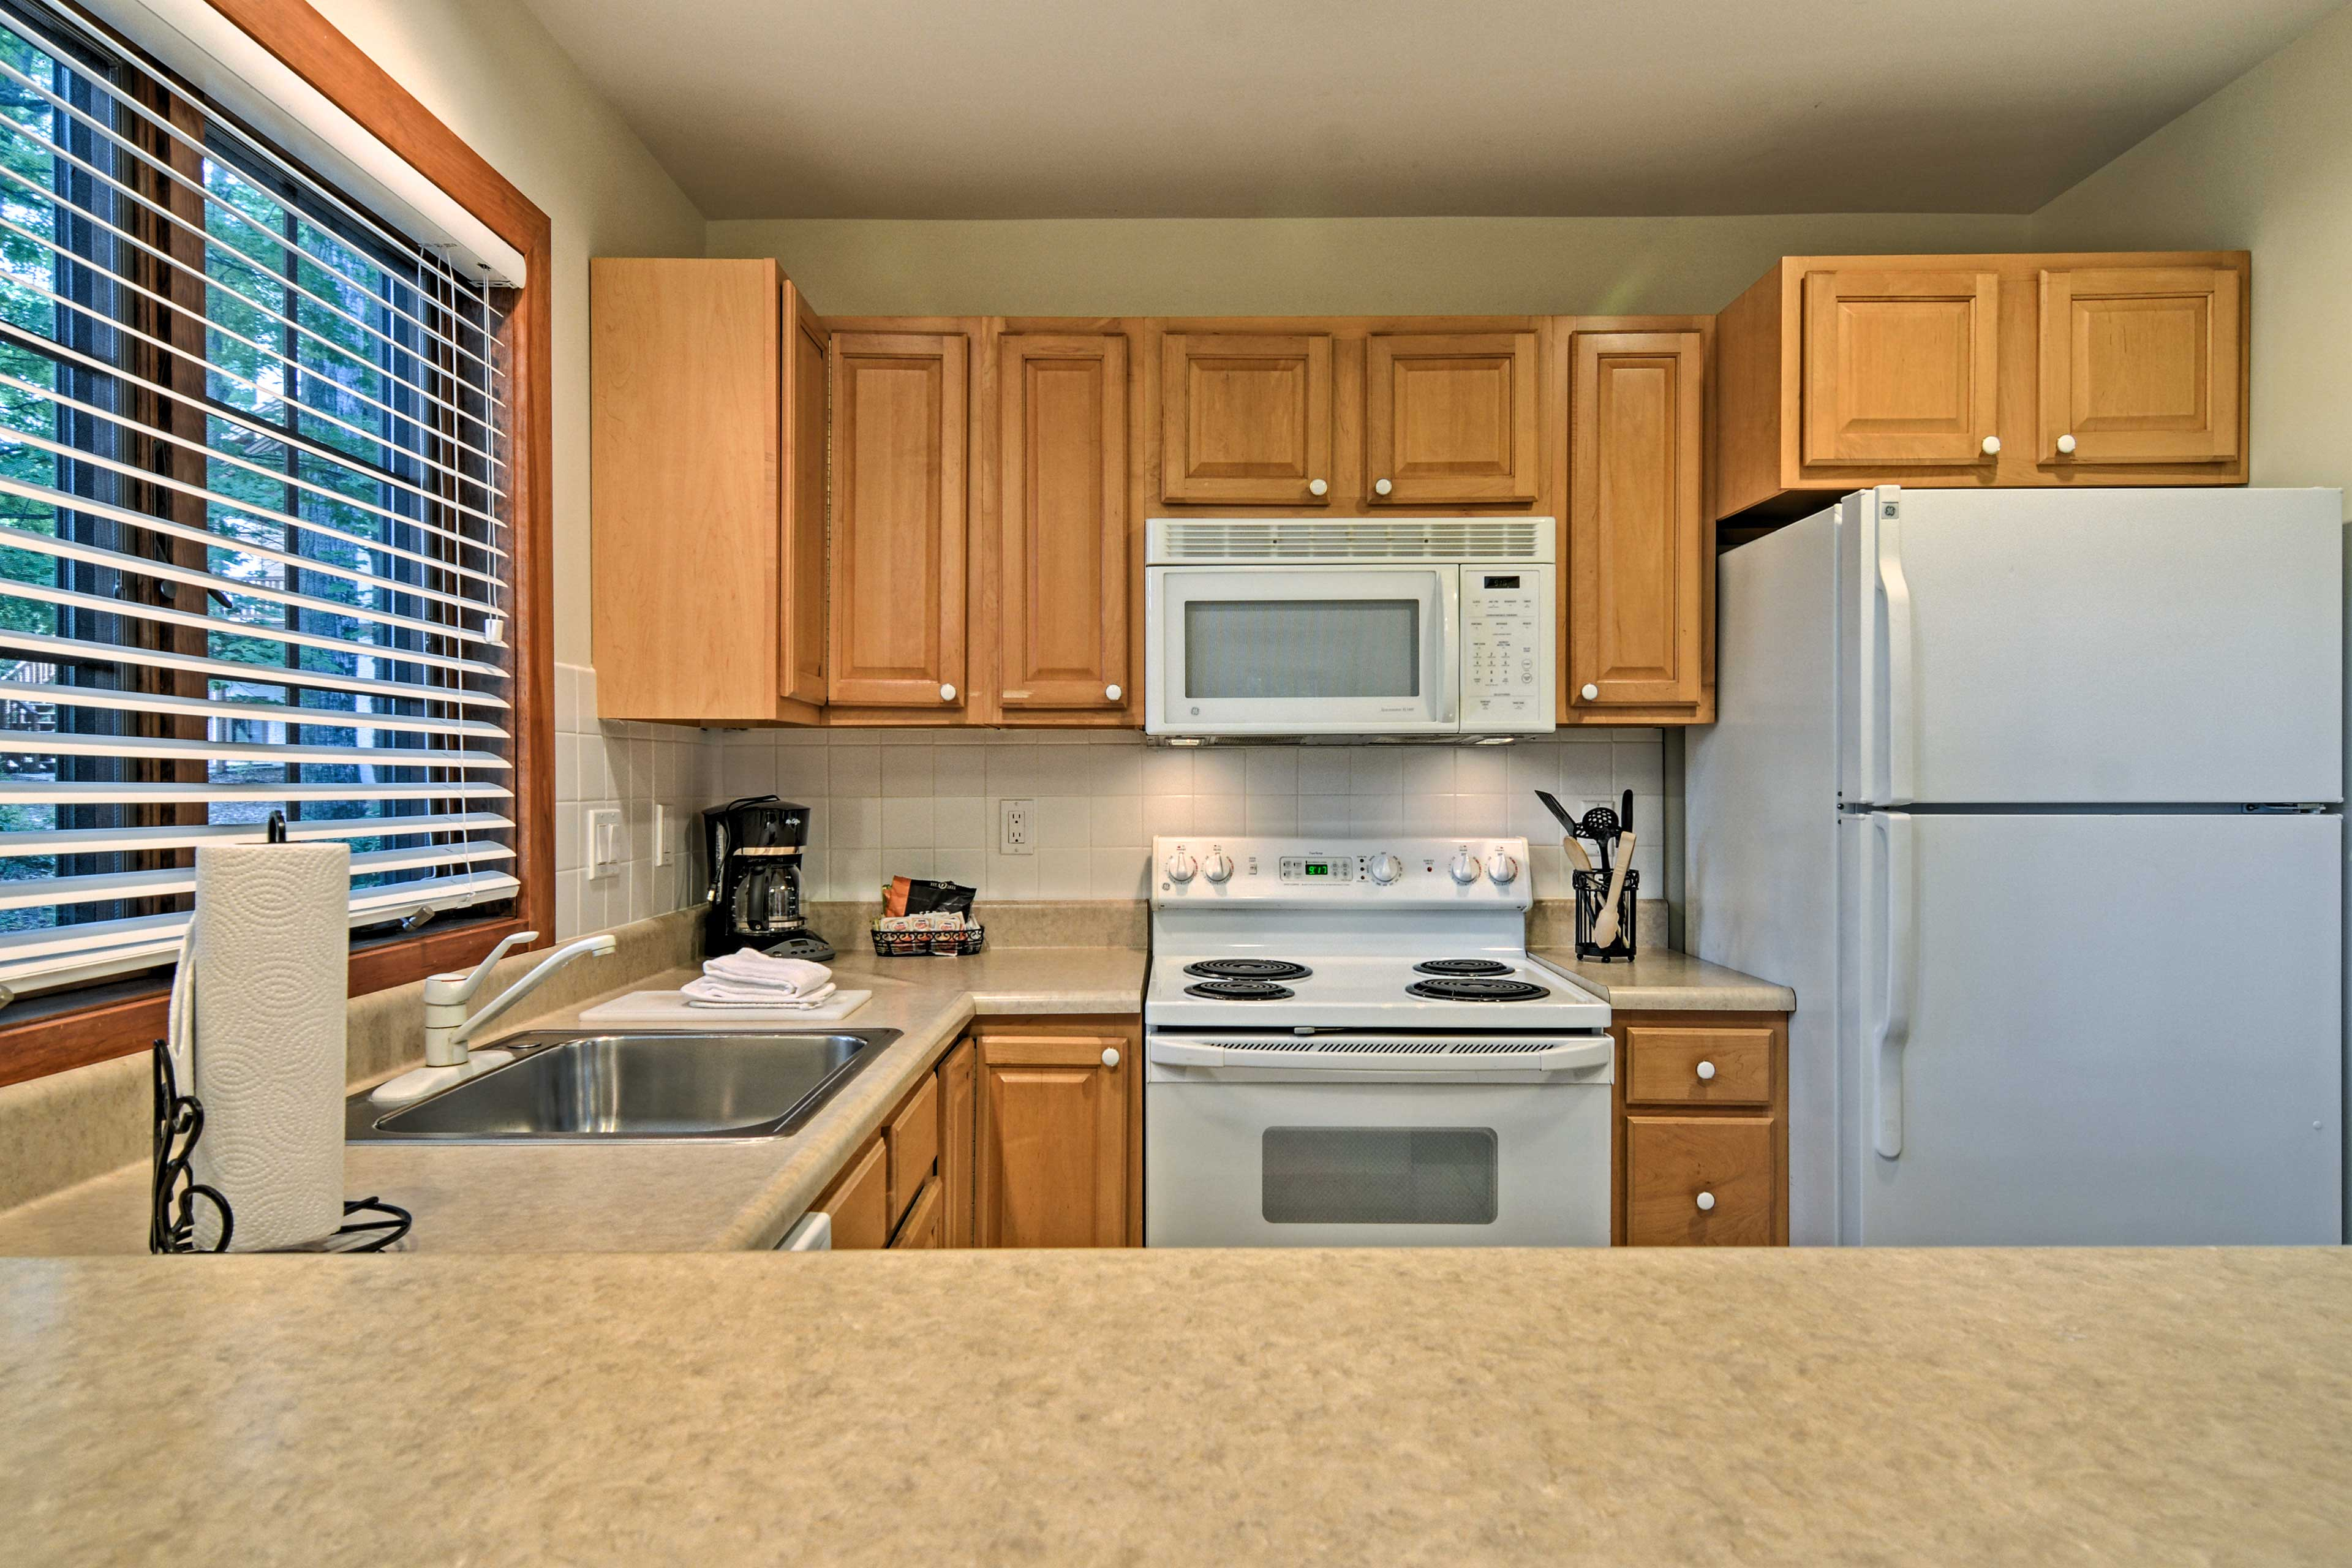 Whip up your family's favorite dish in this fully equipped kitchen!